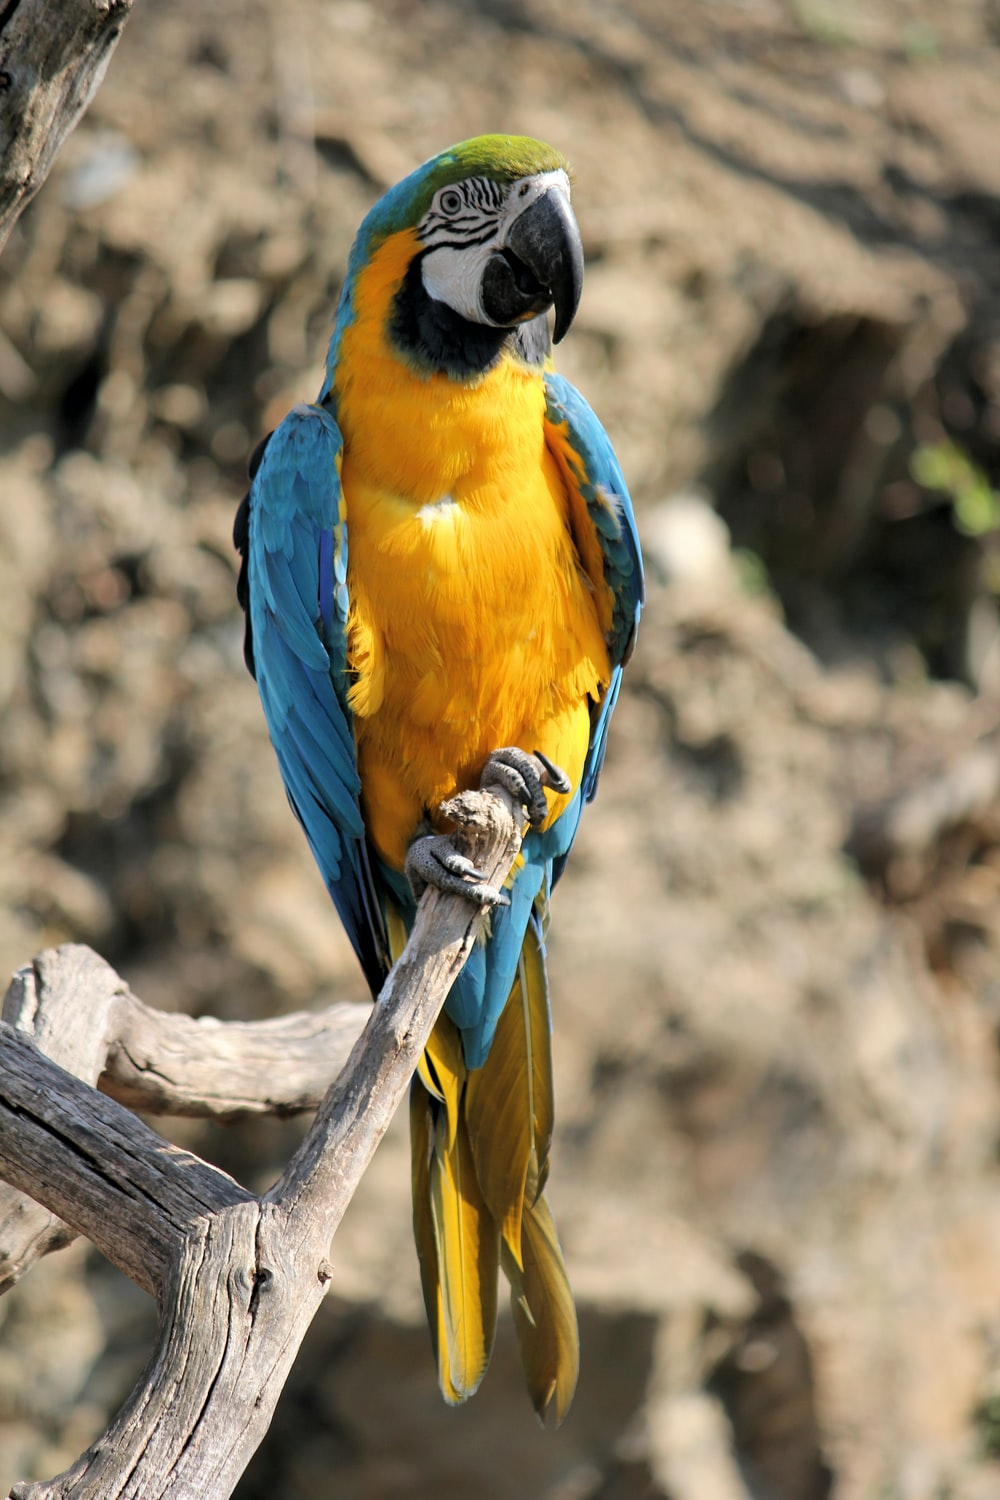 blue-and-yellow parrot perched on tree during daytime